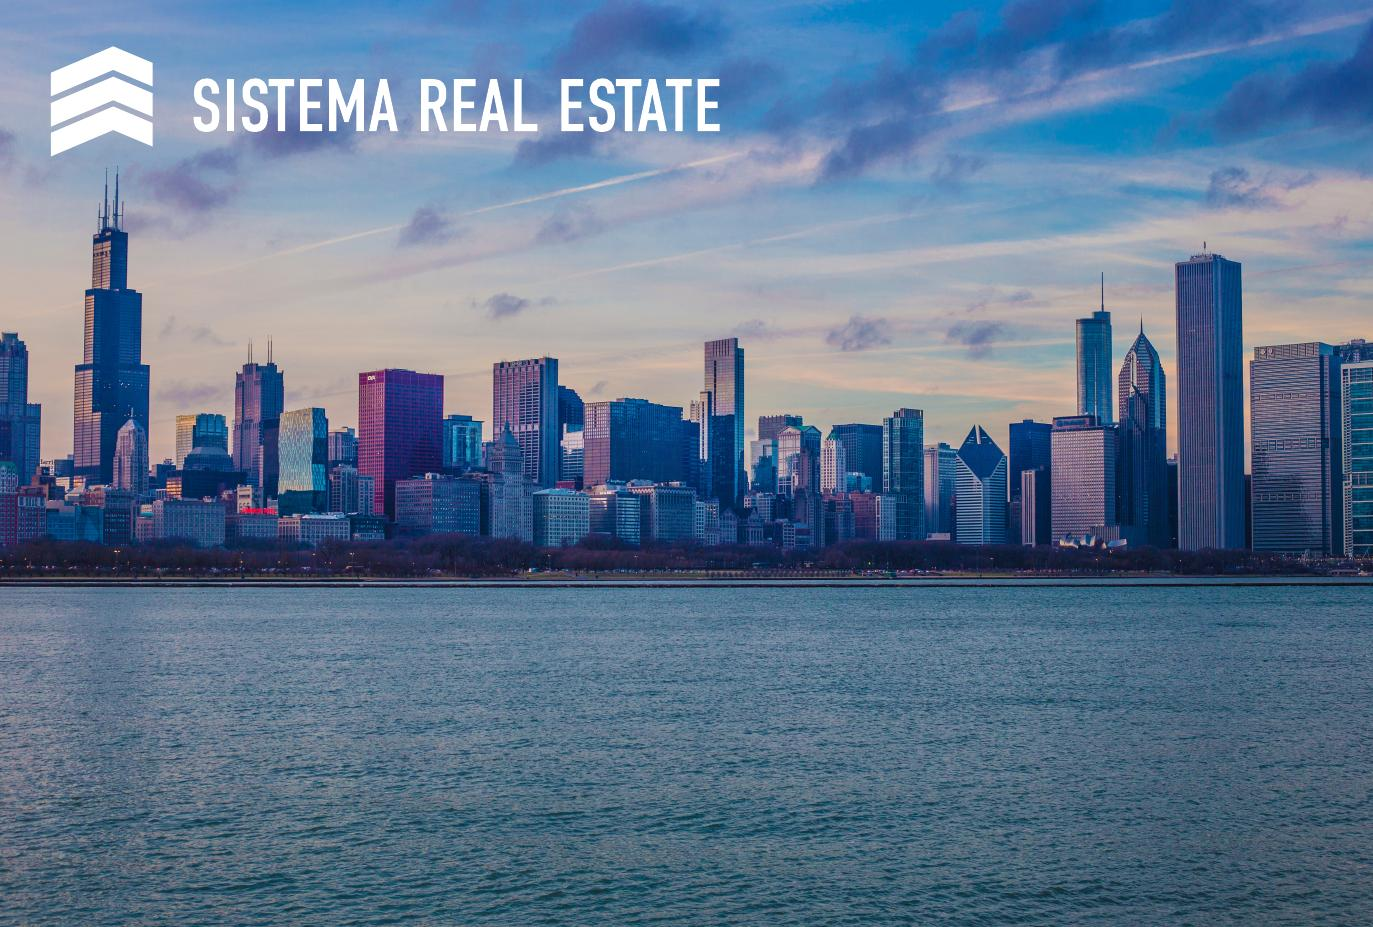 Sistema Real Estate